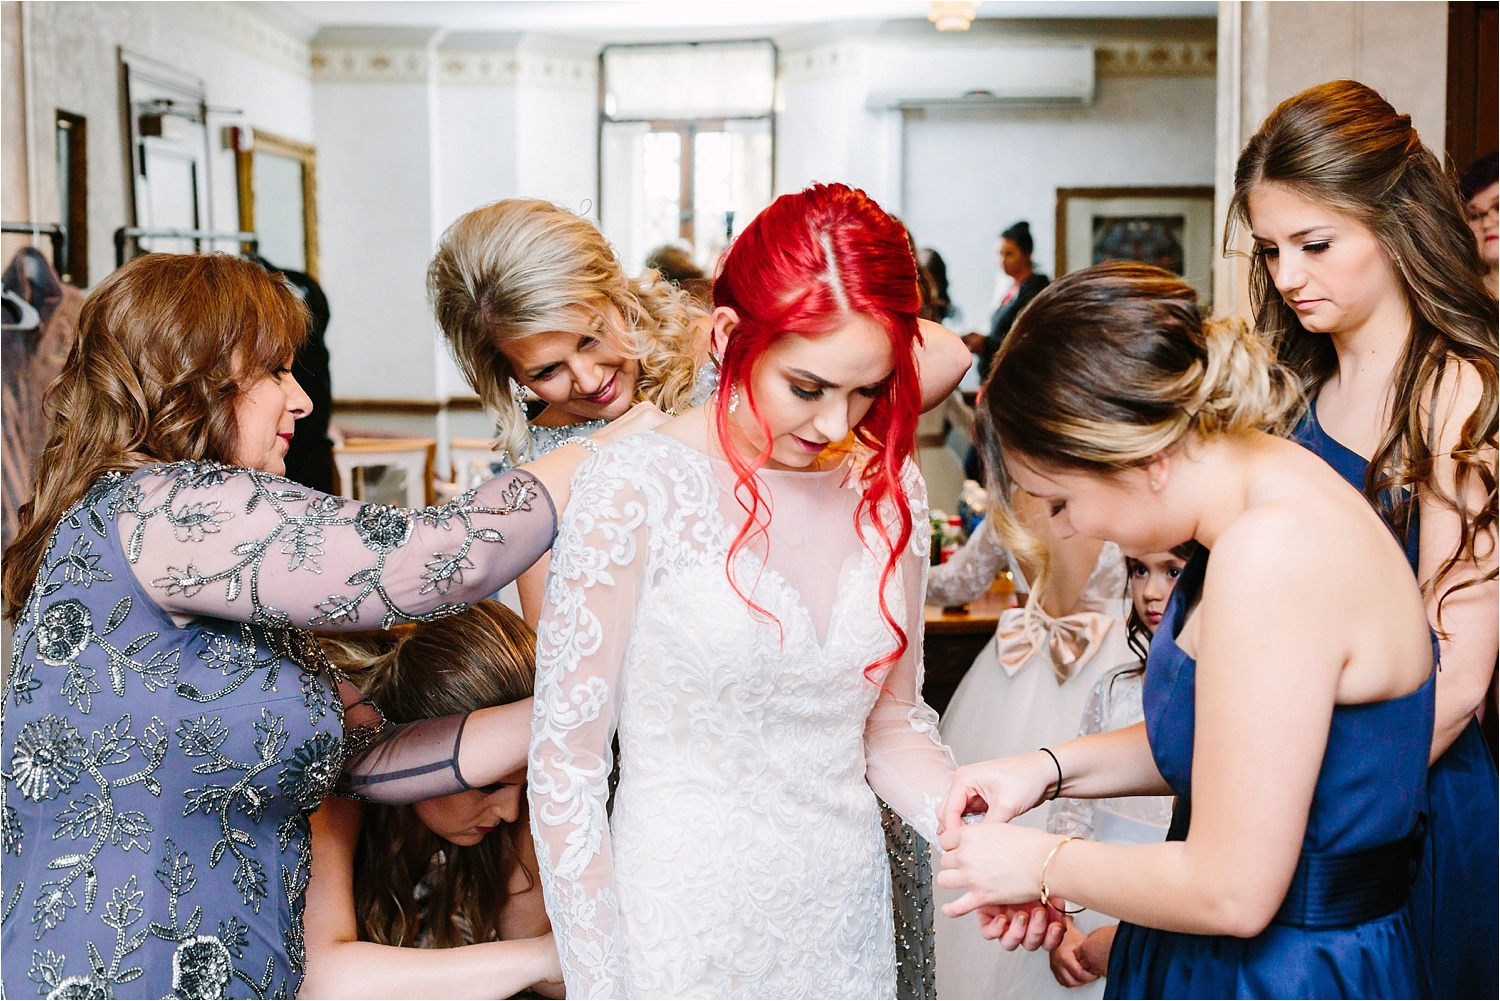 Some of my favorite photos from every wedding. Mamas and bridesmaids helping the bride with the dress.